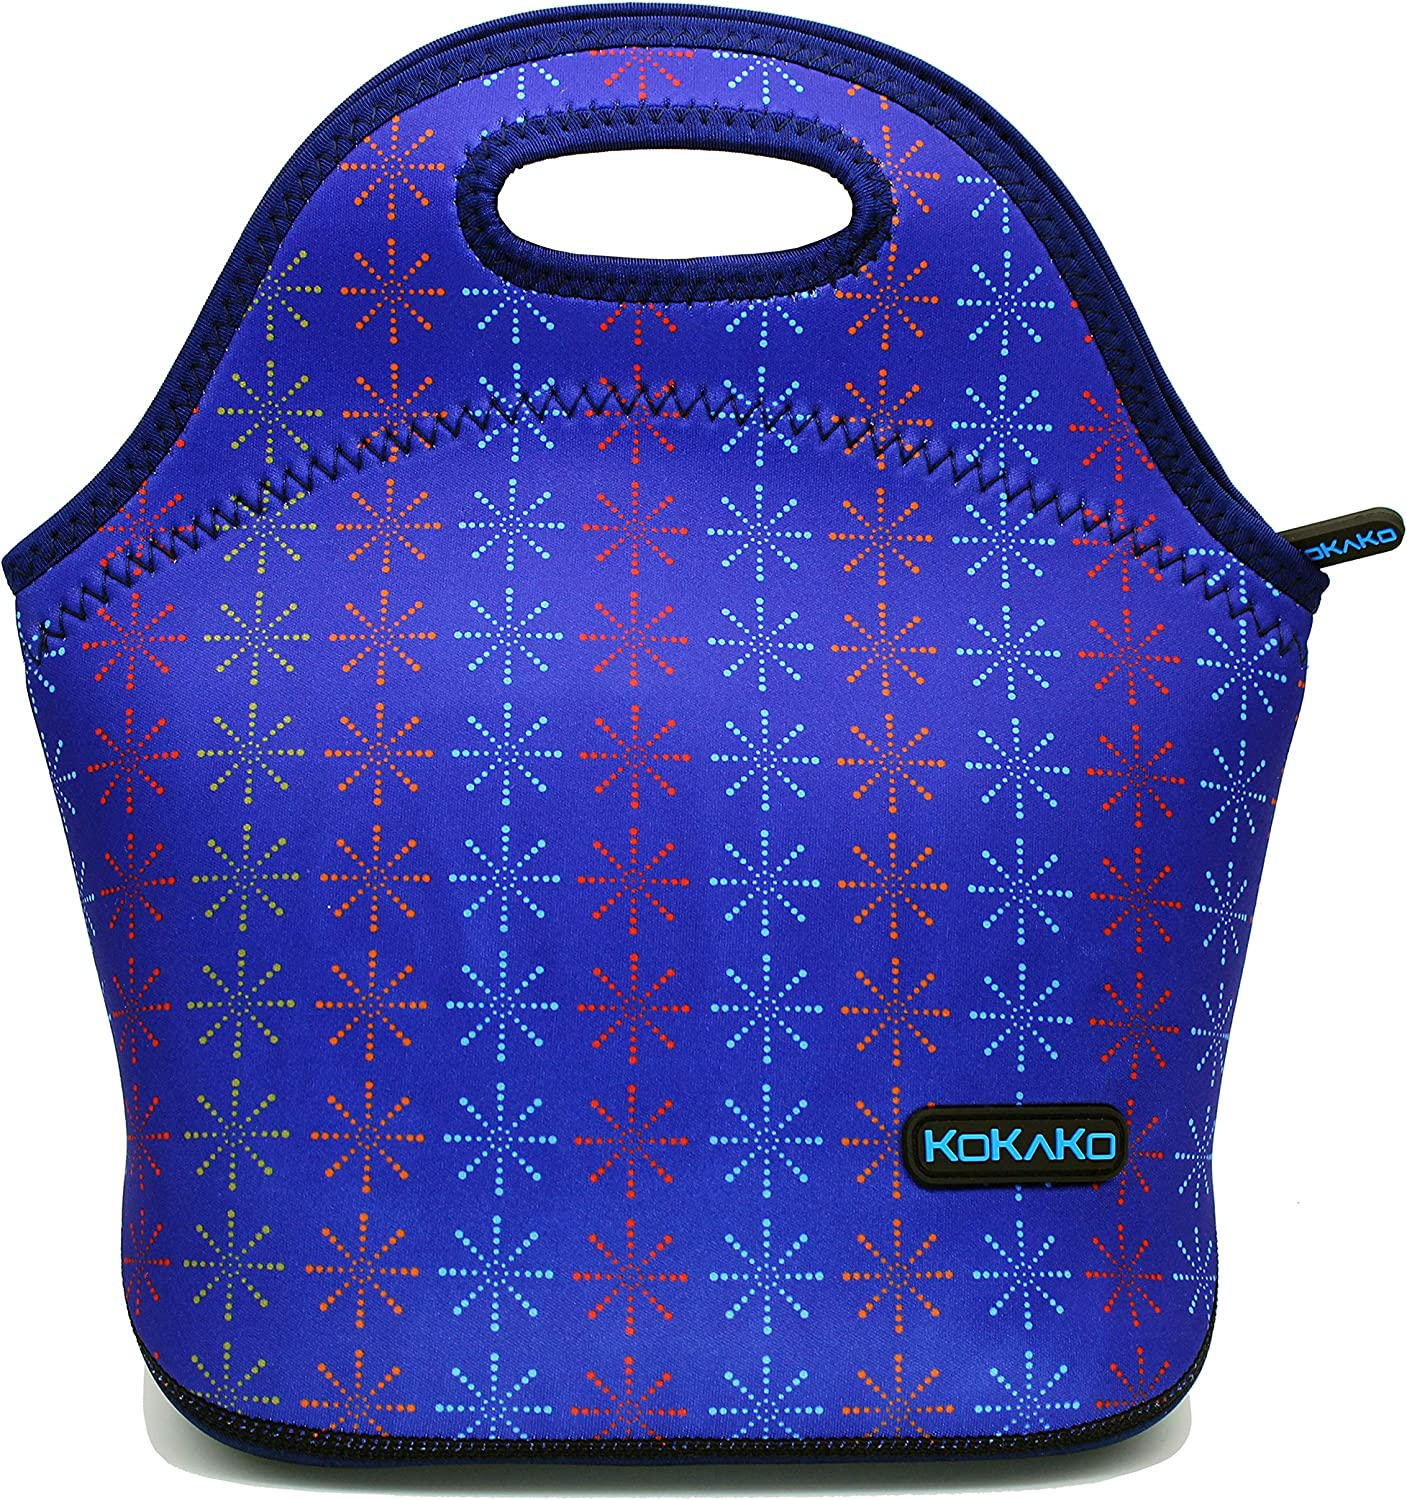 Lunch Bags For Women Neoprene Lunch Box By KOKAKO Washable Insulated Tote for Kids